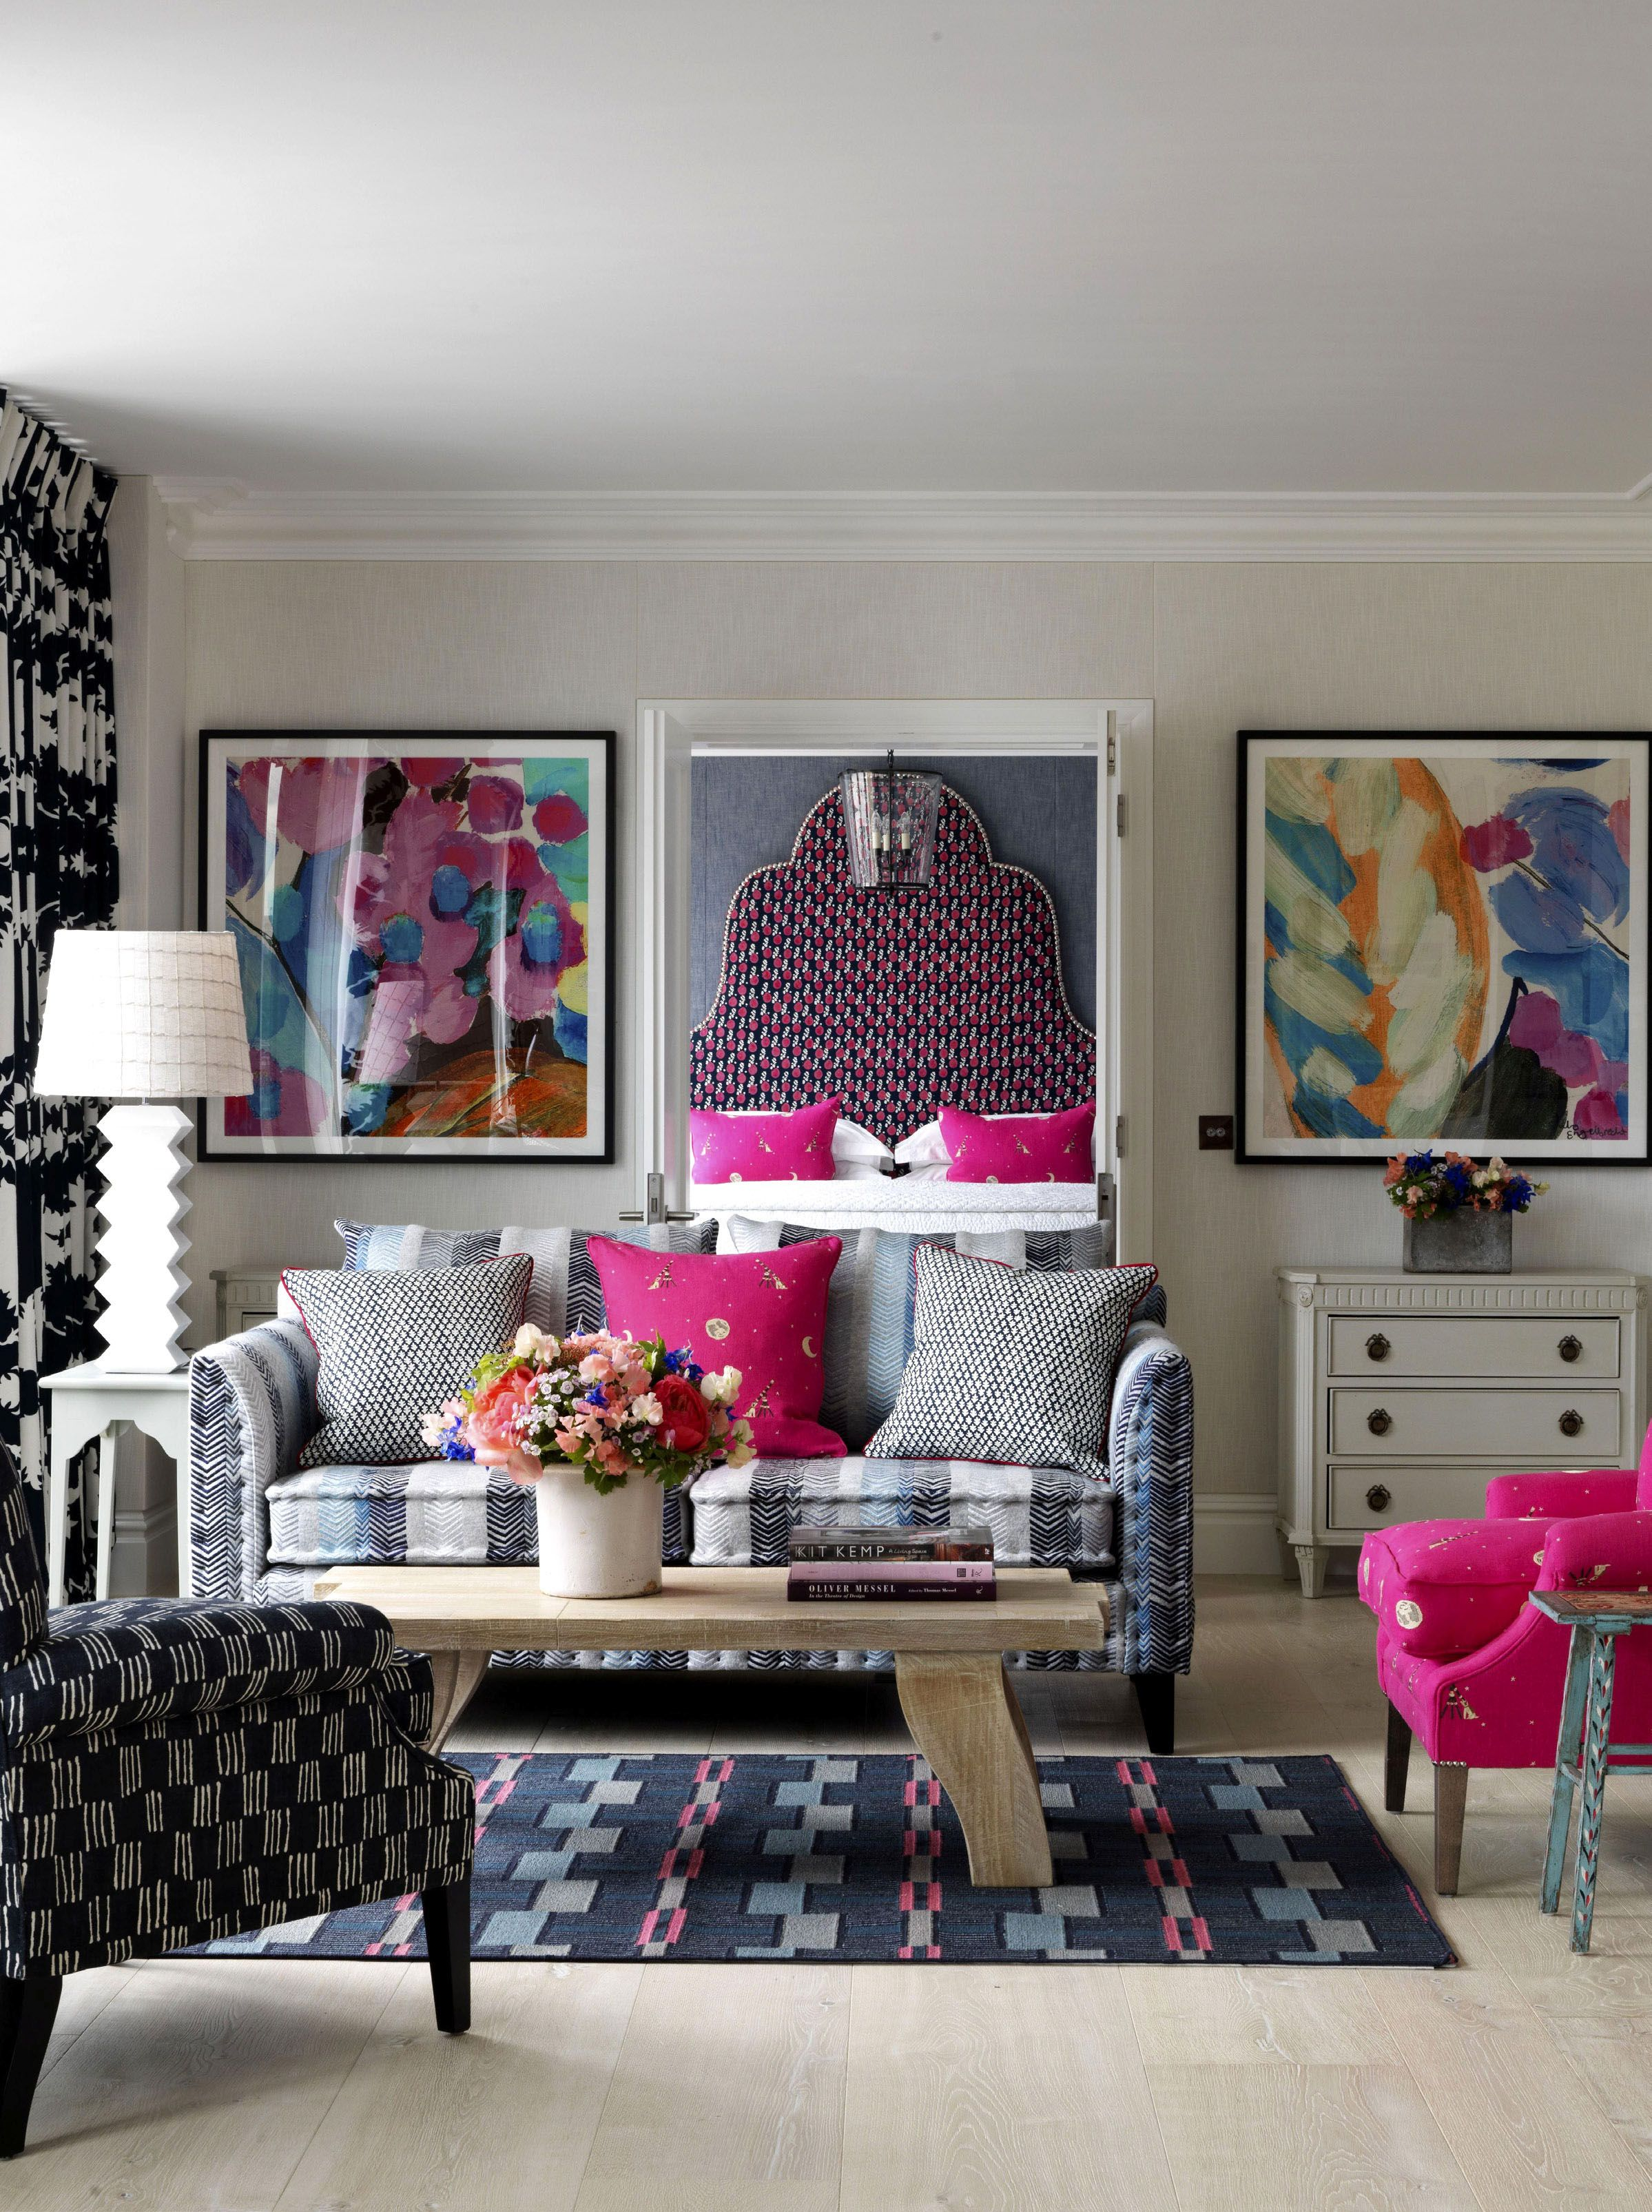 Superbe Colorful, Whimsical Living Space; A Fun Place To Gather For Happy Times.